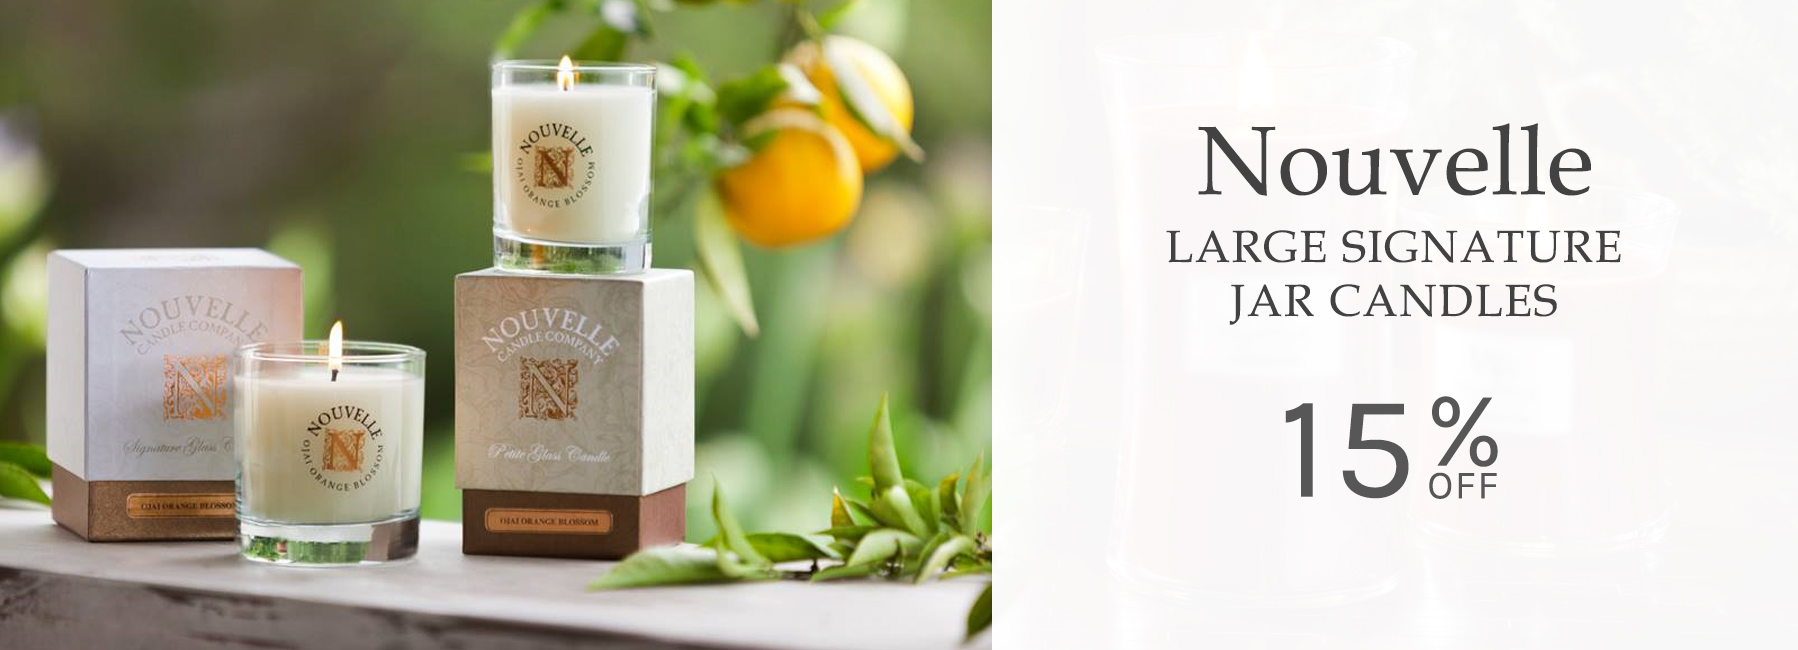 Nouvelle Candles - Large Signature Glass Candles - 15 Percent OFF